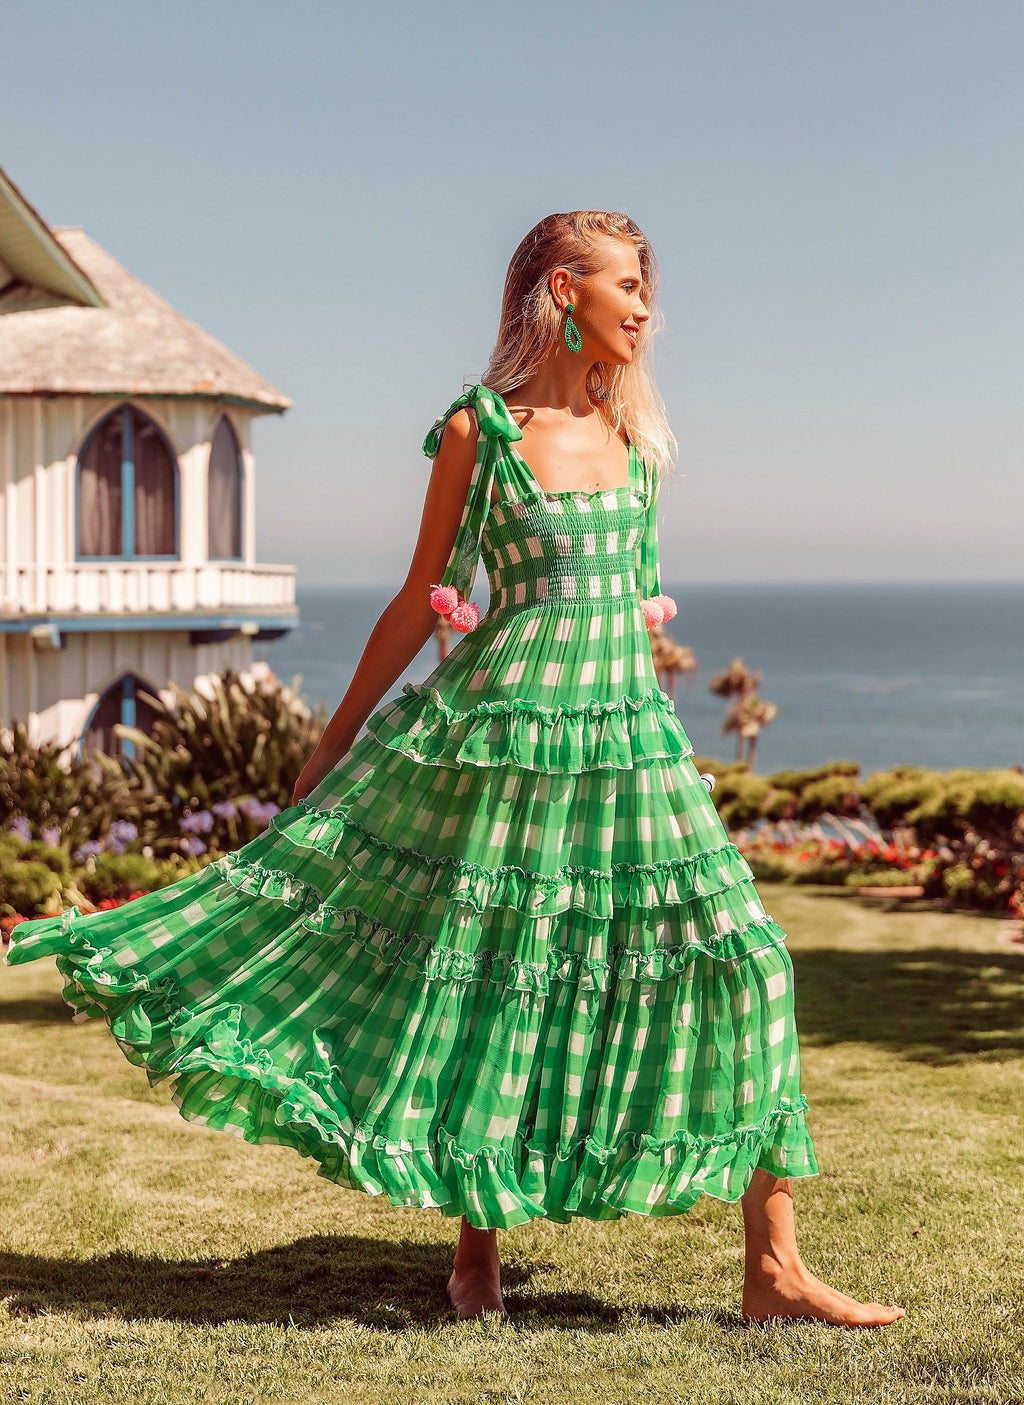 Bernice Gingham Lime dress with Neon Pompom